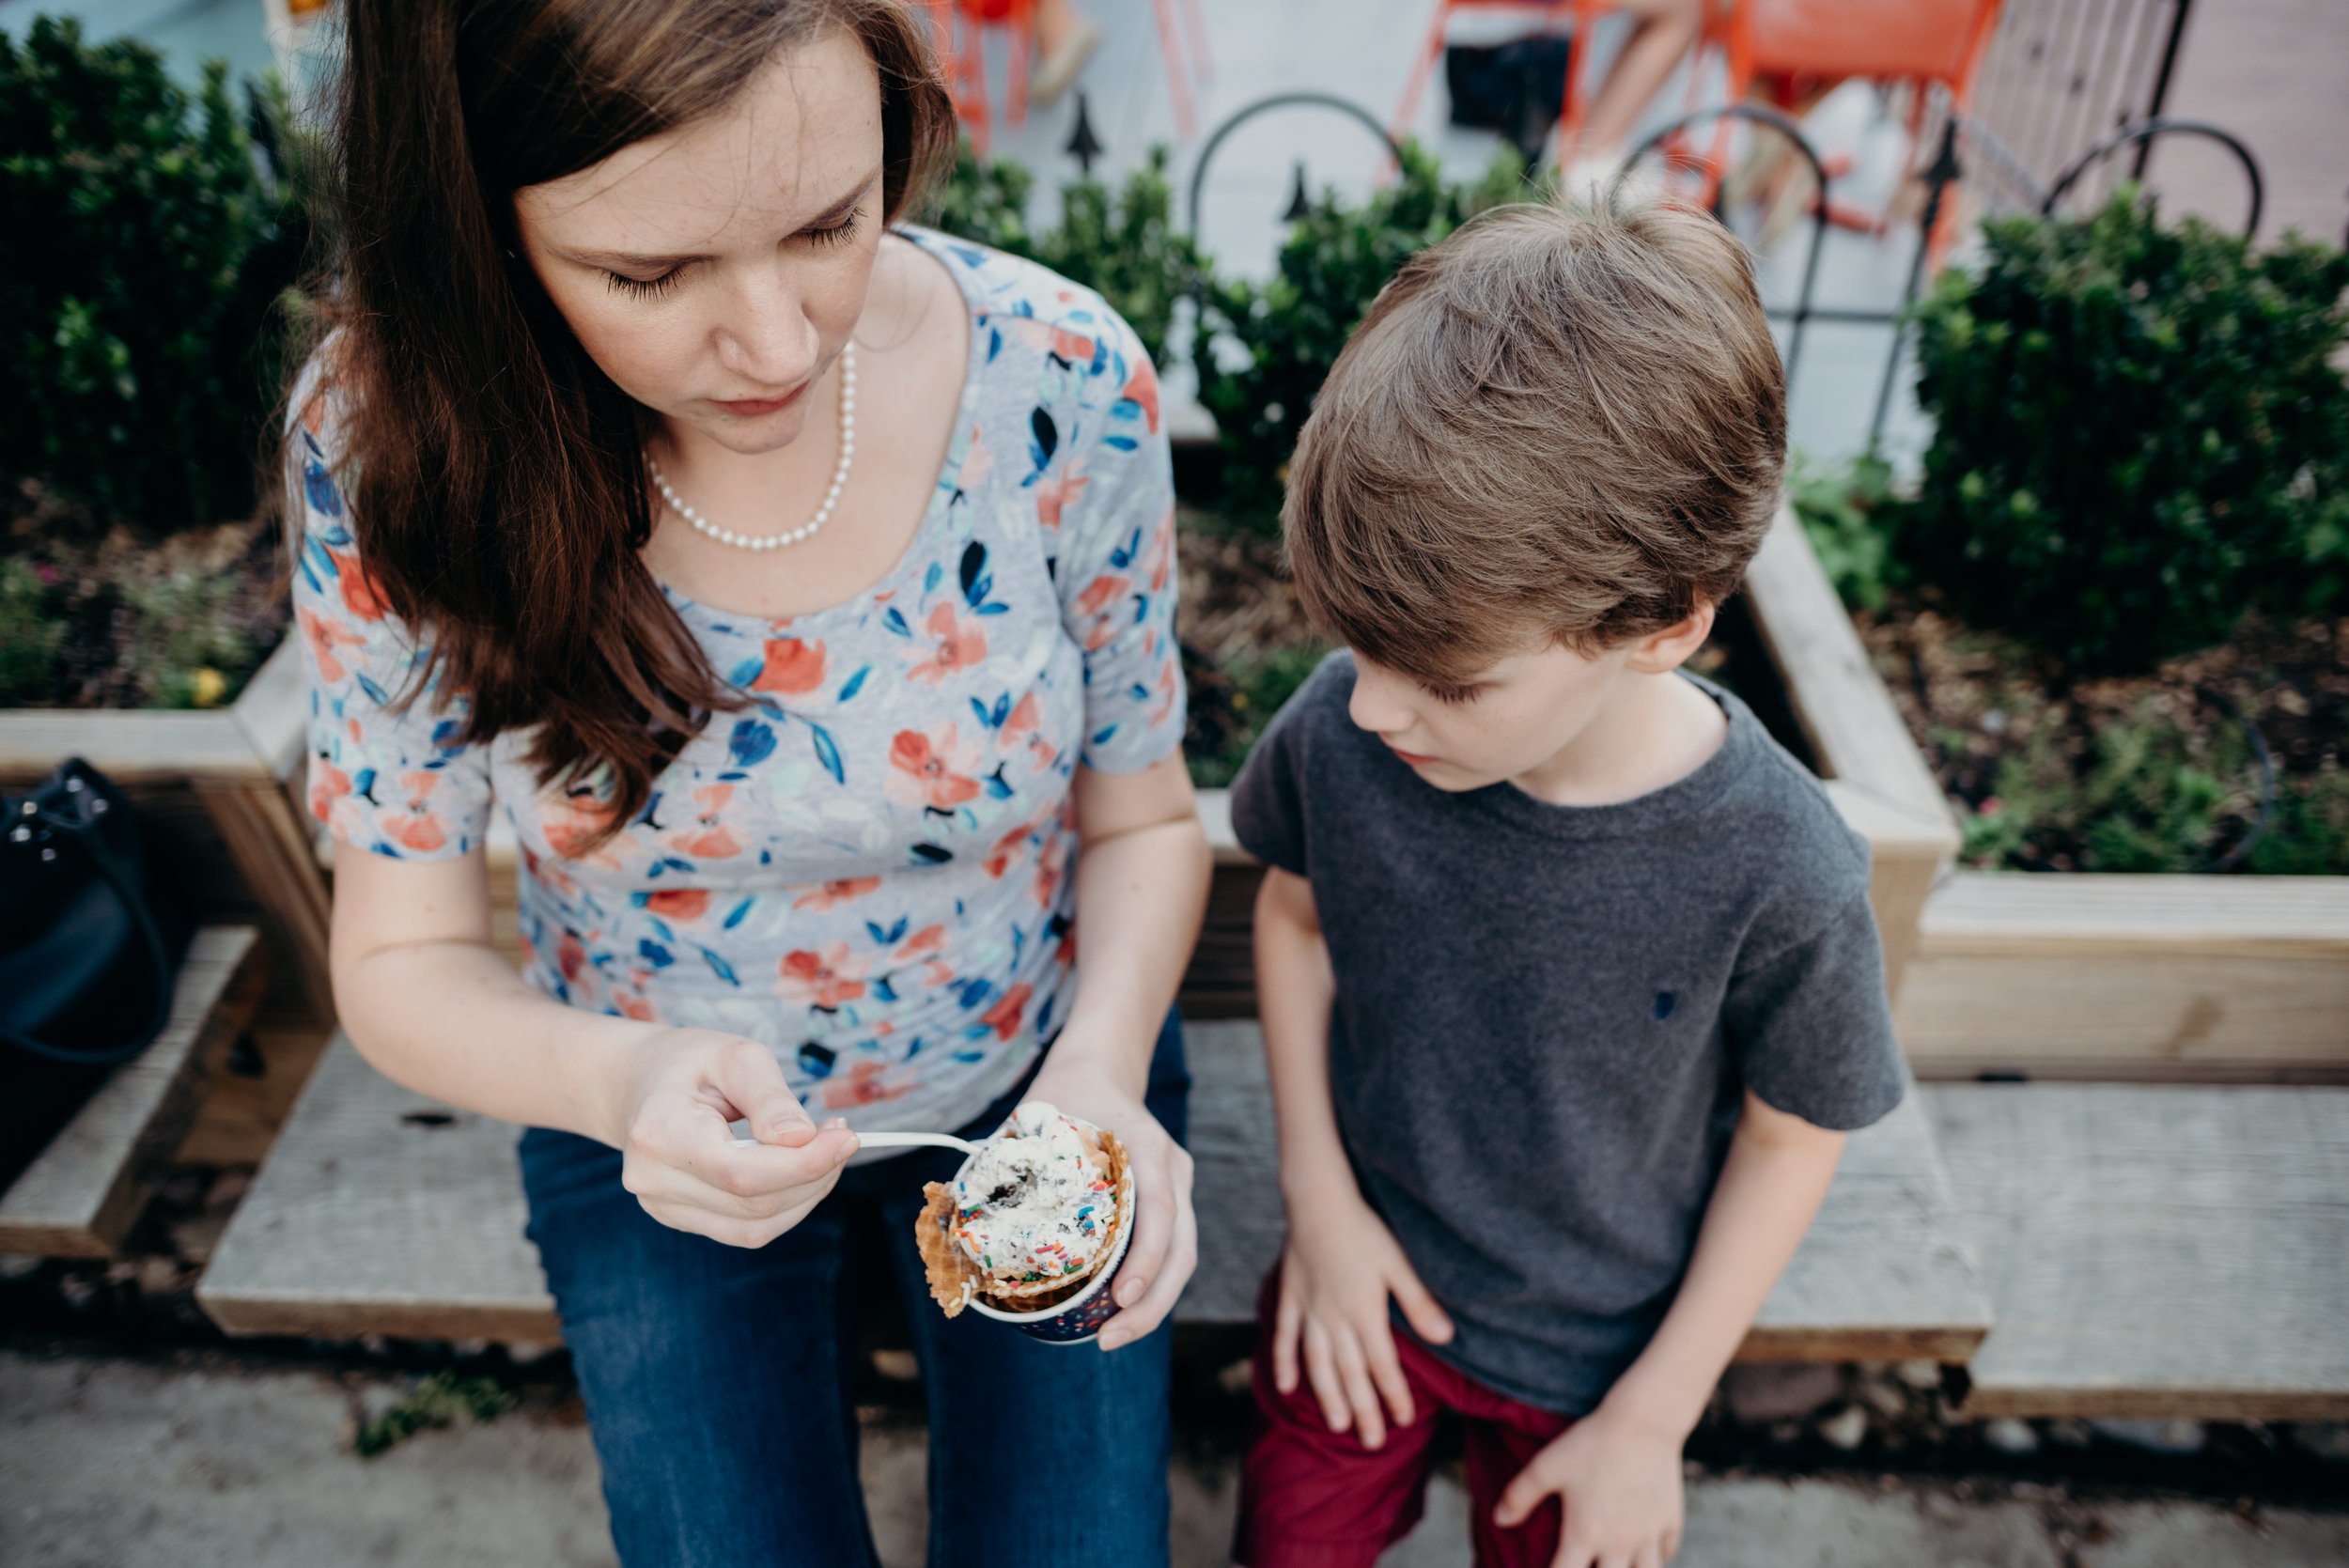 mother-son-ice-cream-date-best-family-photographer-washington-dc-lifestyle4.jpg